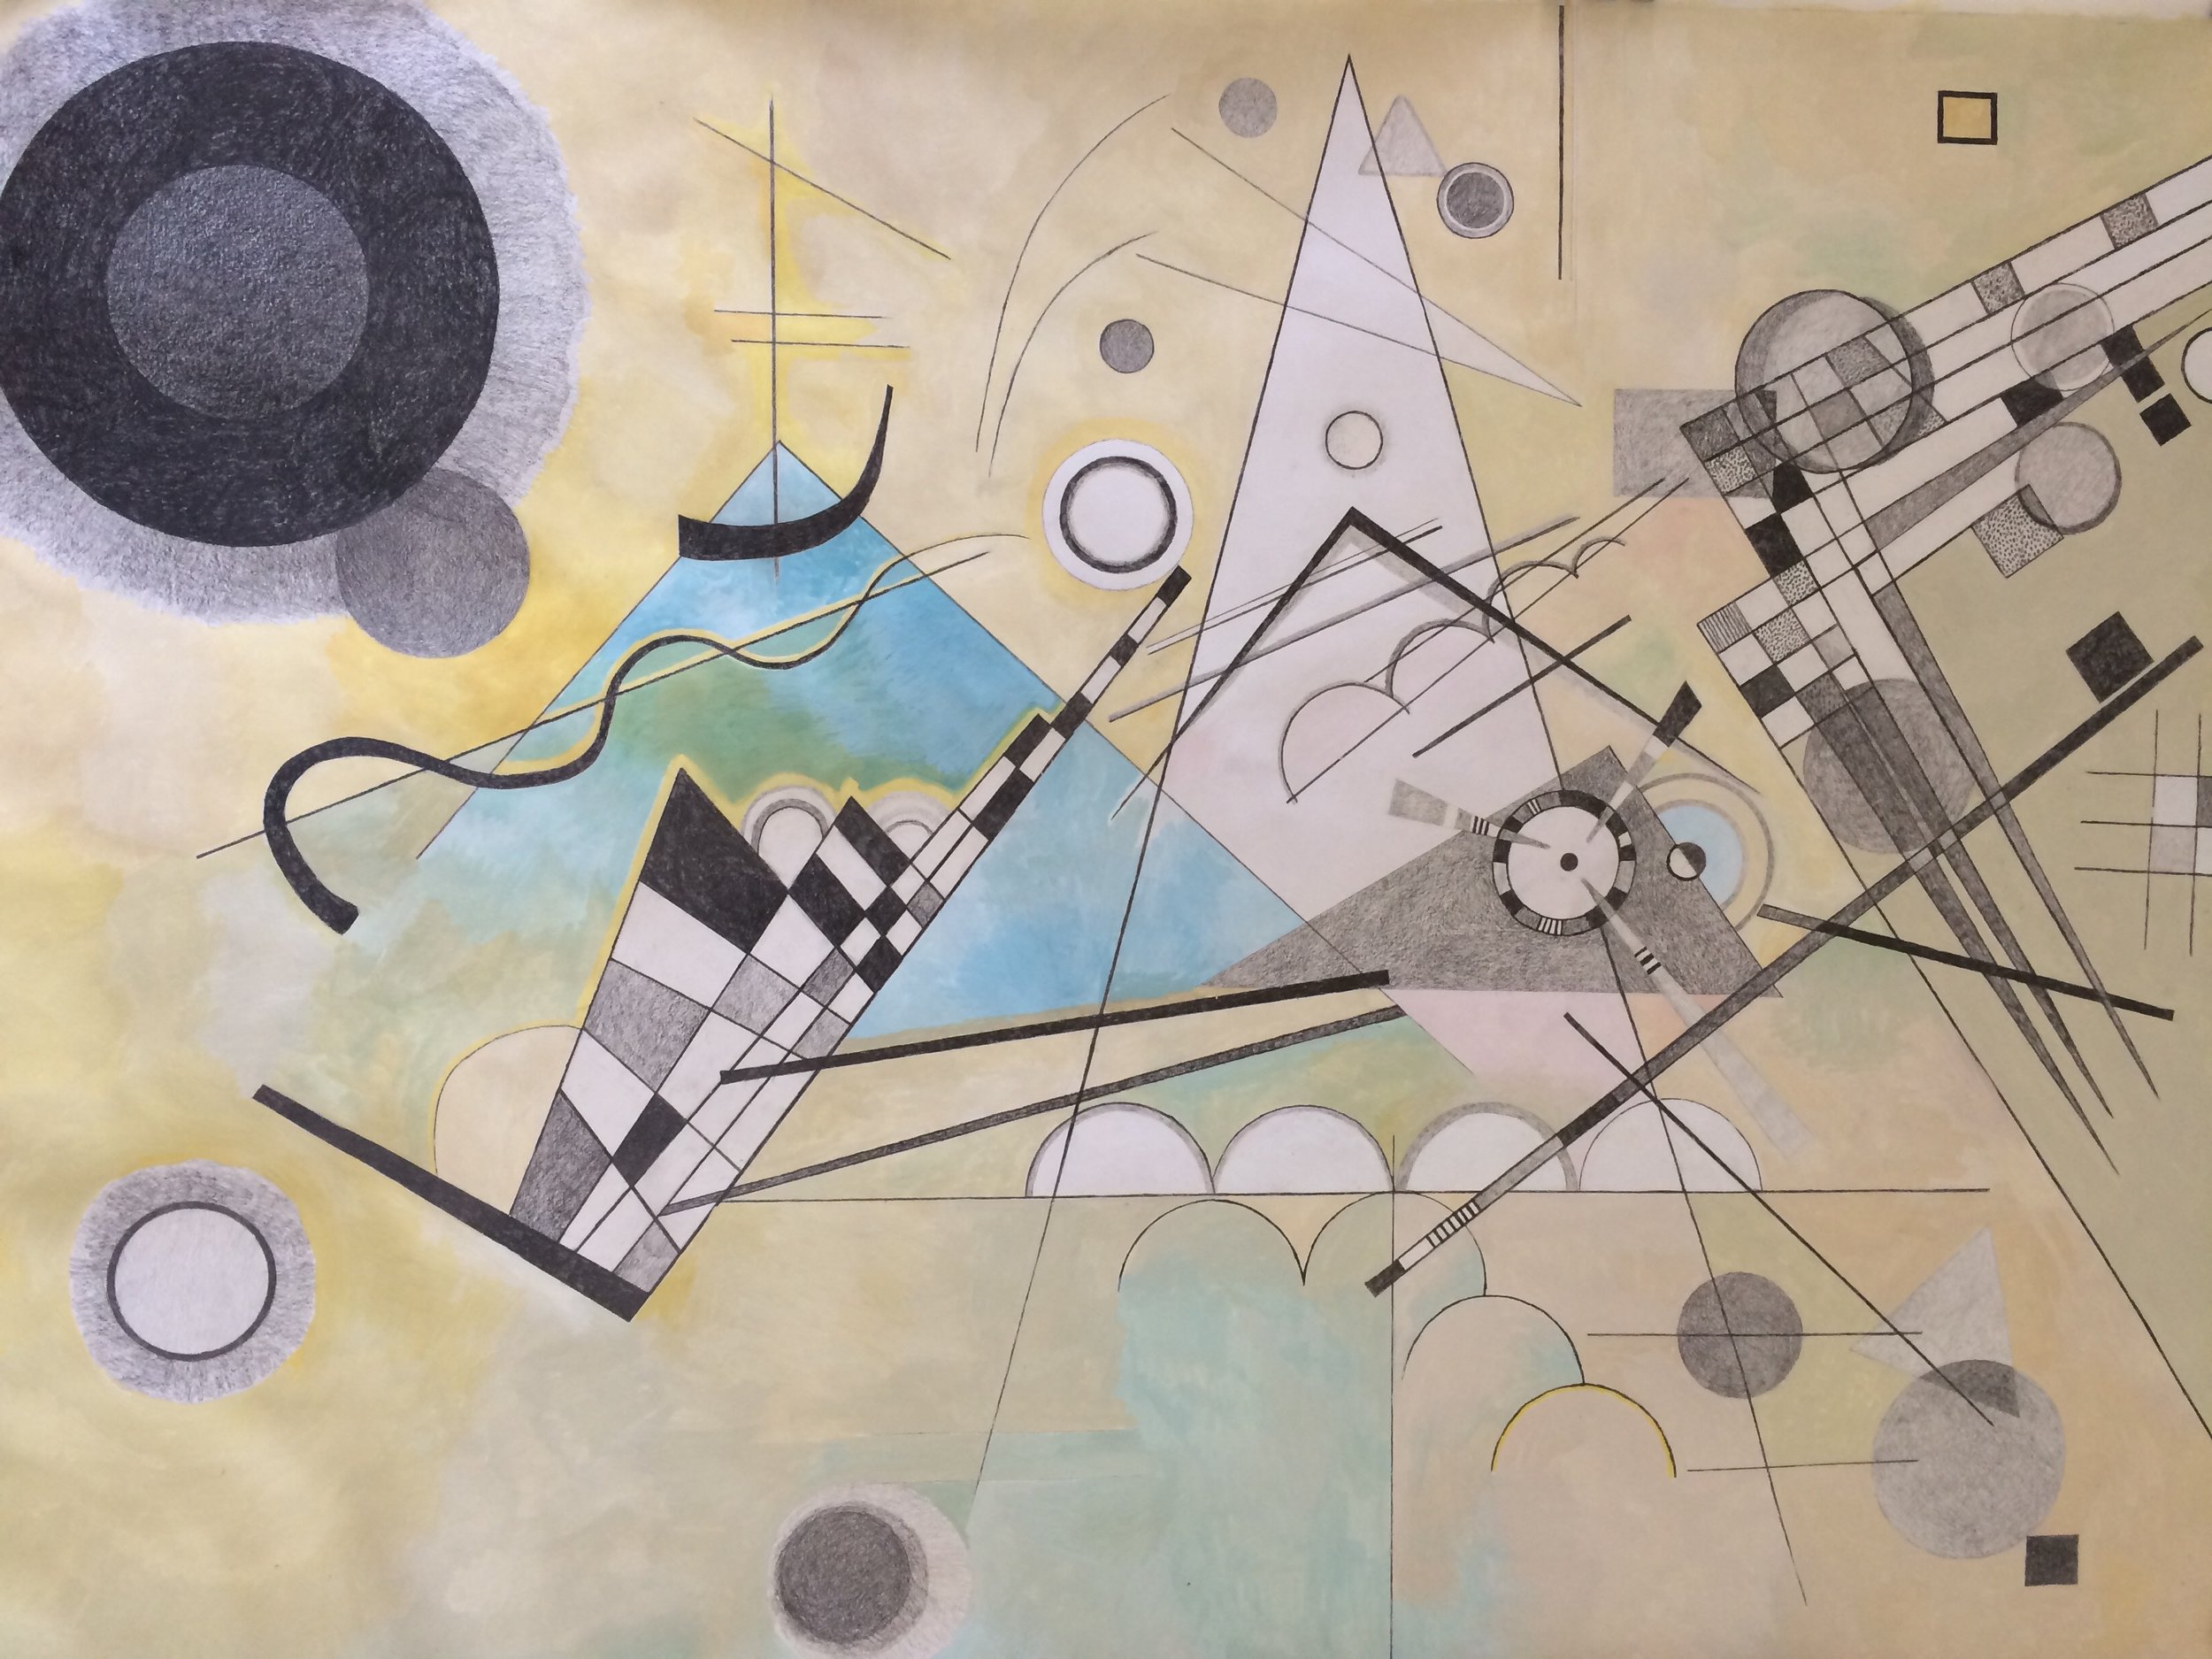 Deconstructing Kandinsky (Composition VII)